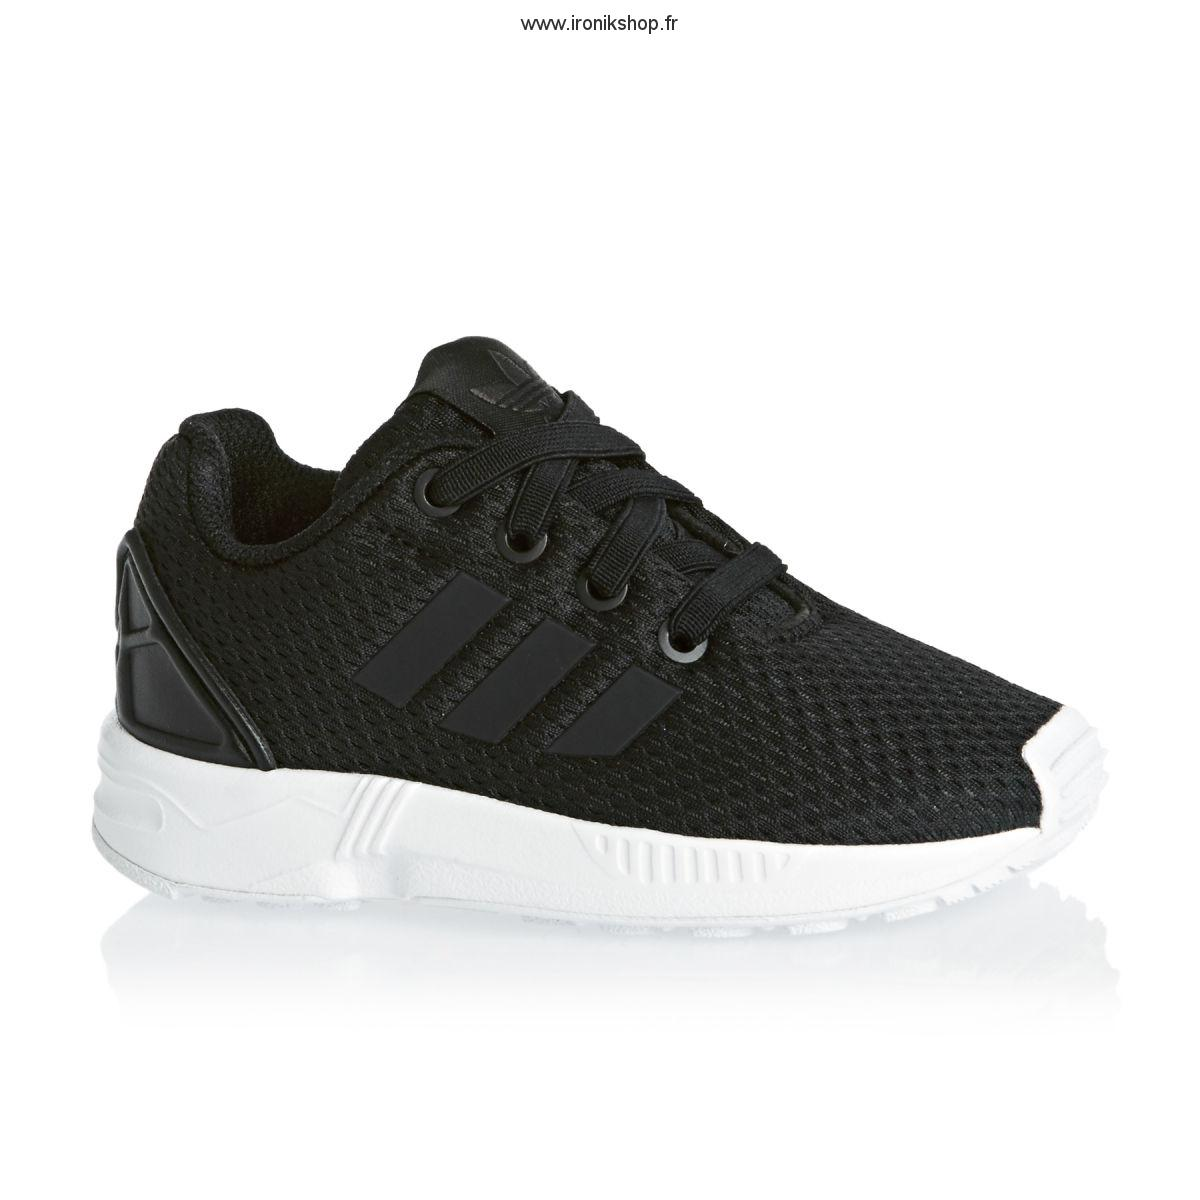 Acheter Taille 34 Pas Flux Adidas Zx Cher frwgqTf